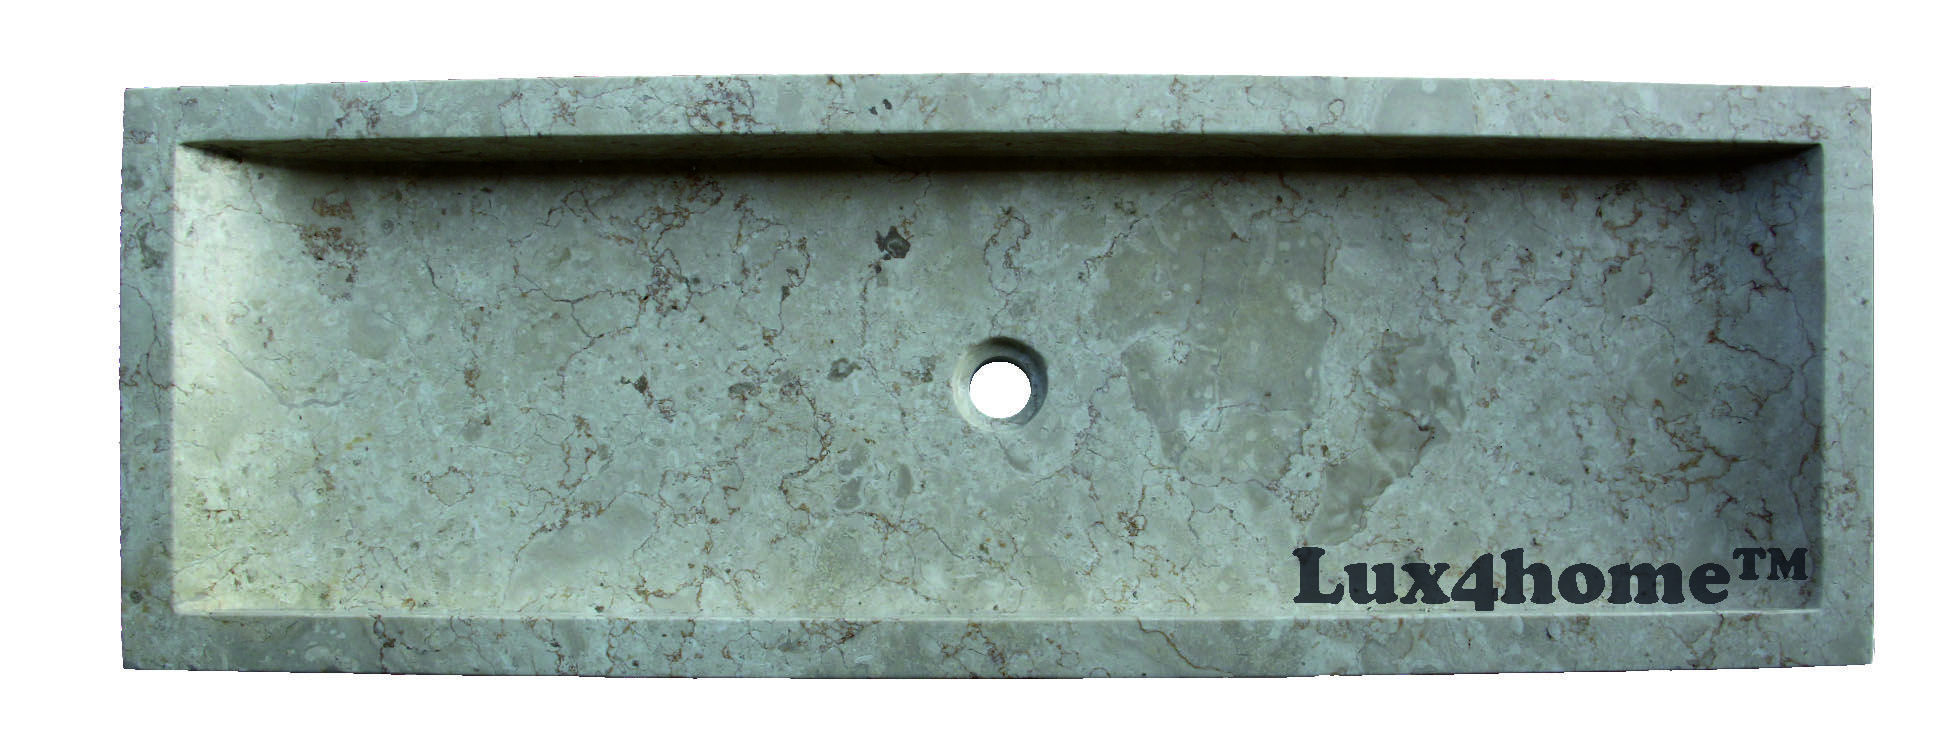 Marble Sinks Lavoir Smooth 120x40x10 cm - Lux4home™